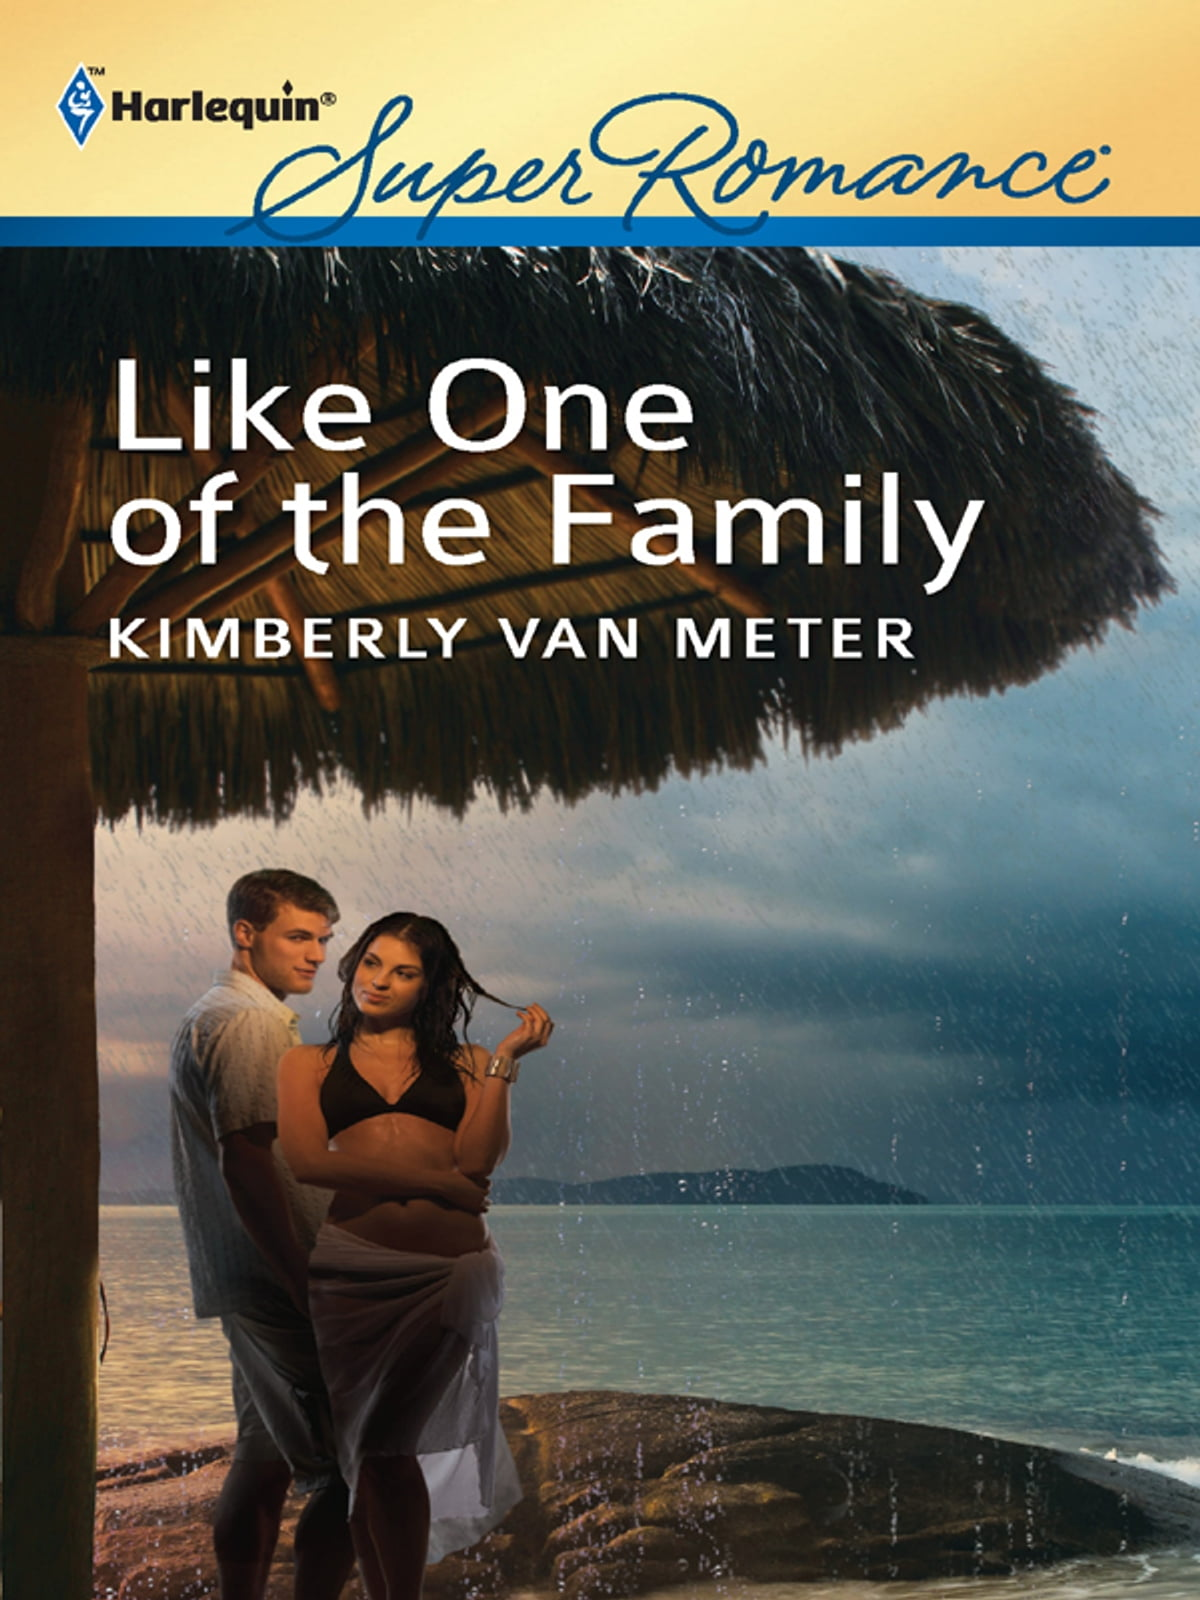 a chance in the night meter kimberly van